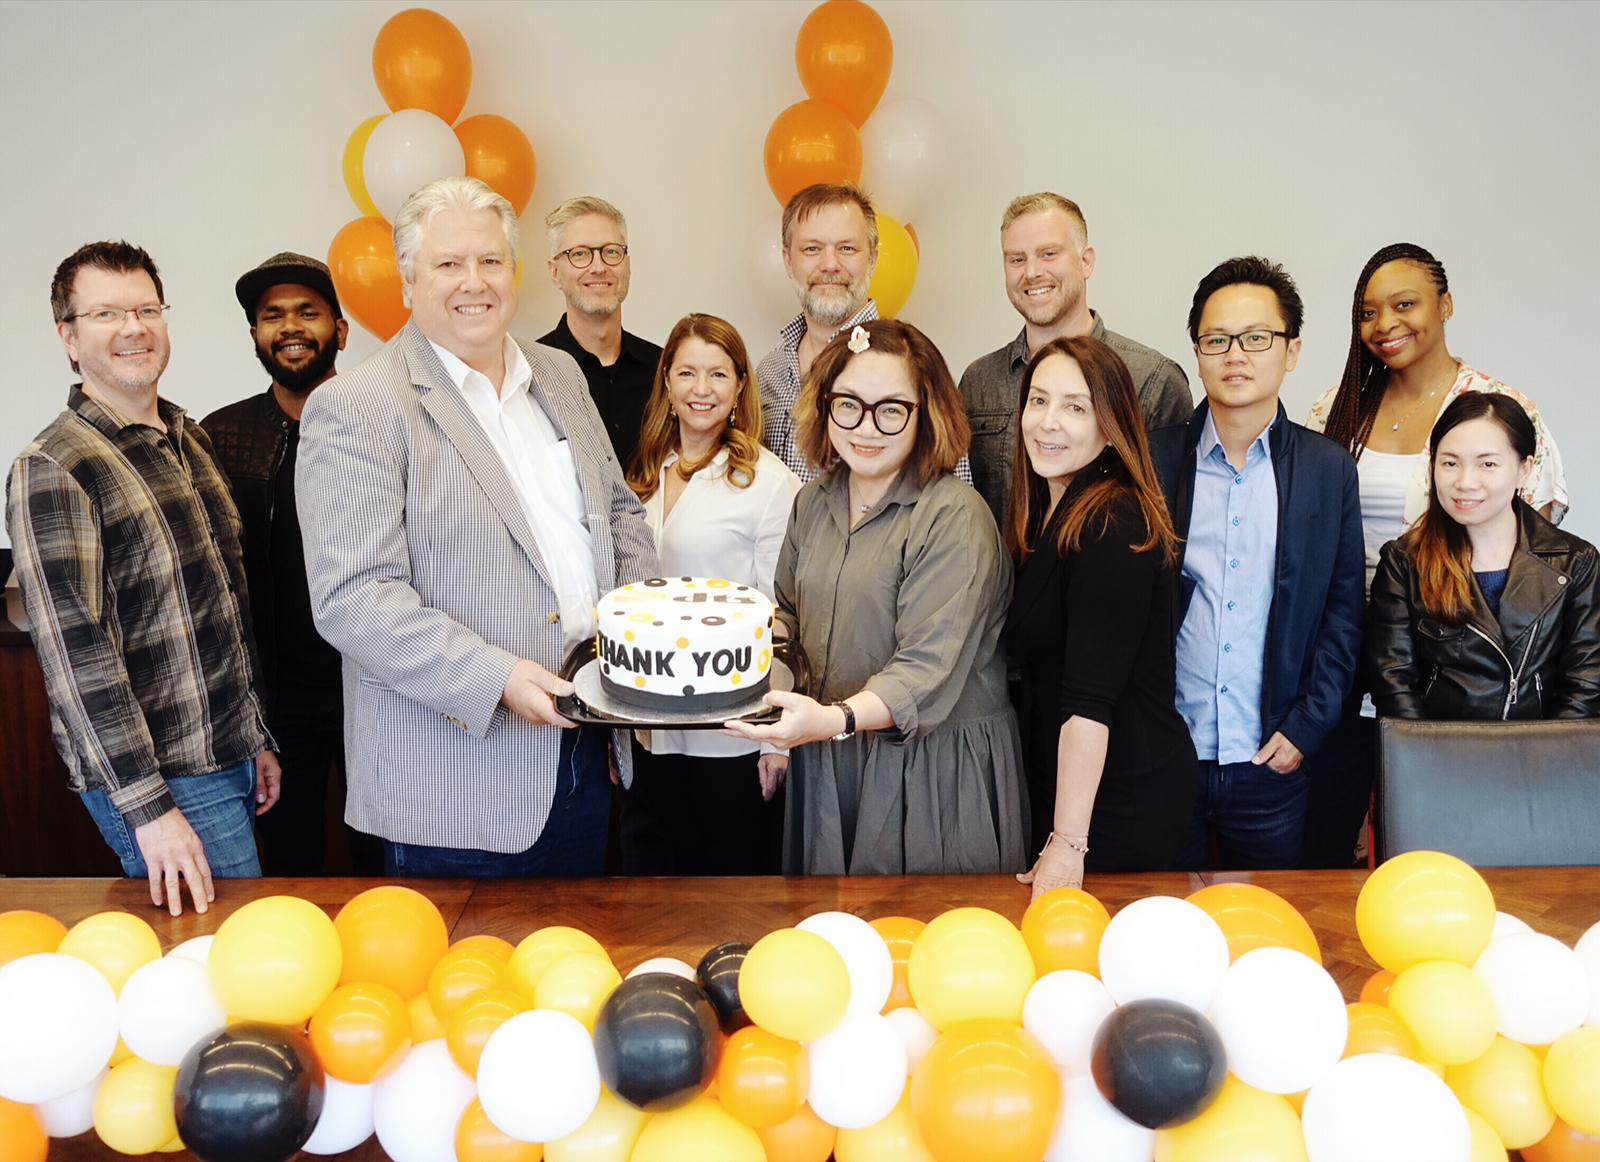 Bill Neighbors, Senior Vice President and General Manager of Content at DTS (3rd from left) welcome Mediacorp Audio Post team .